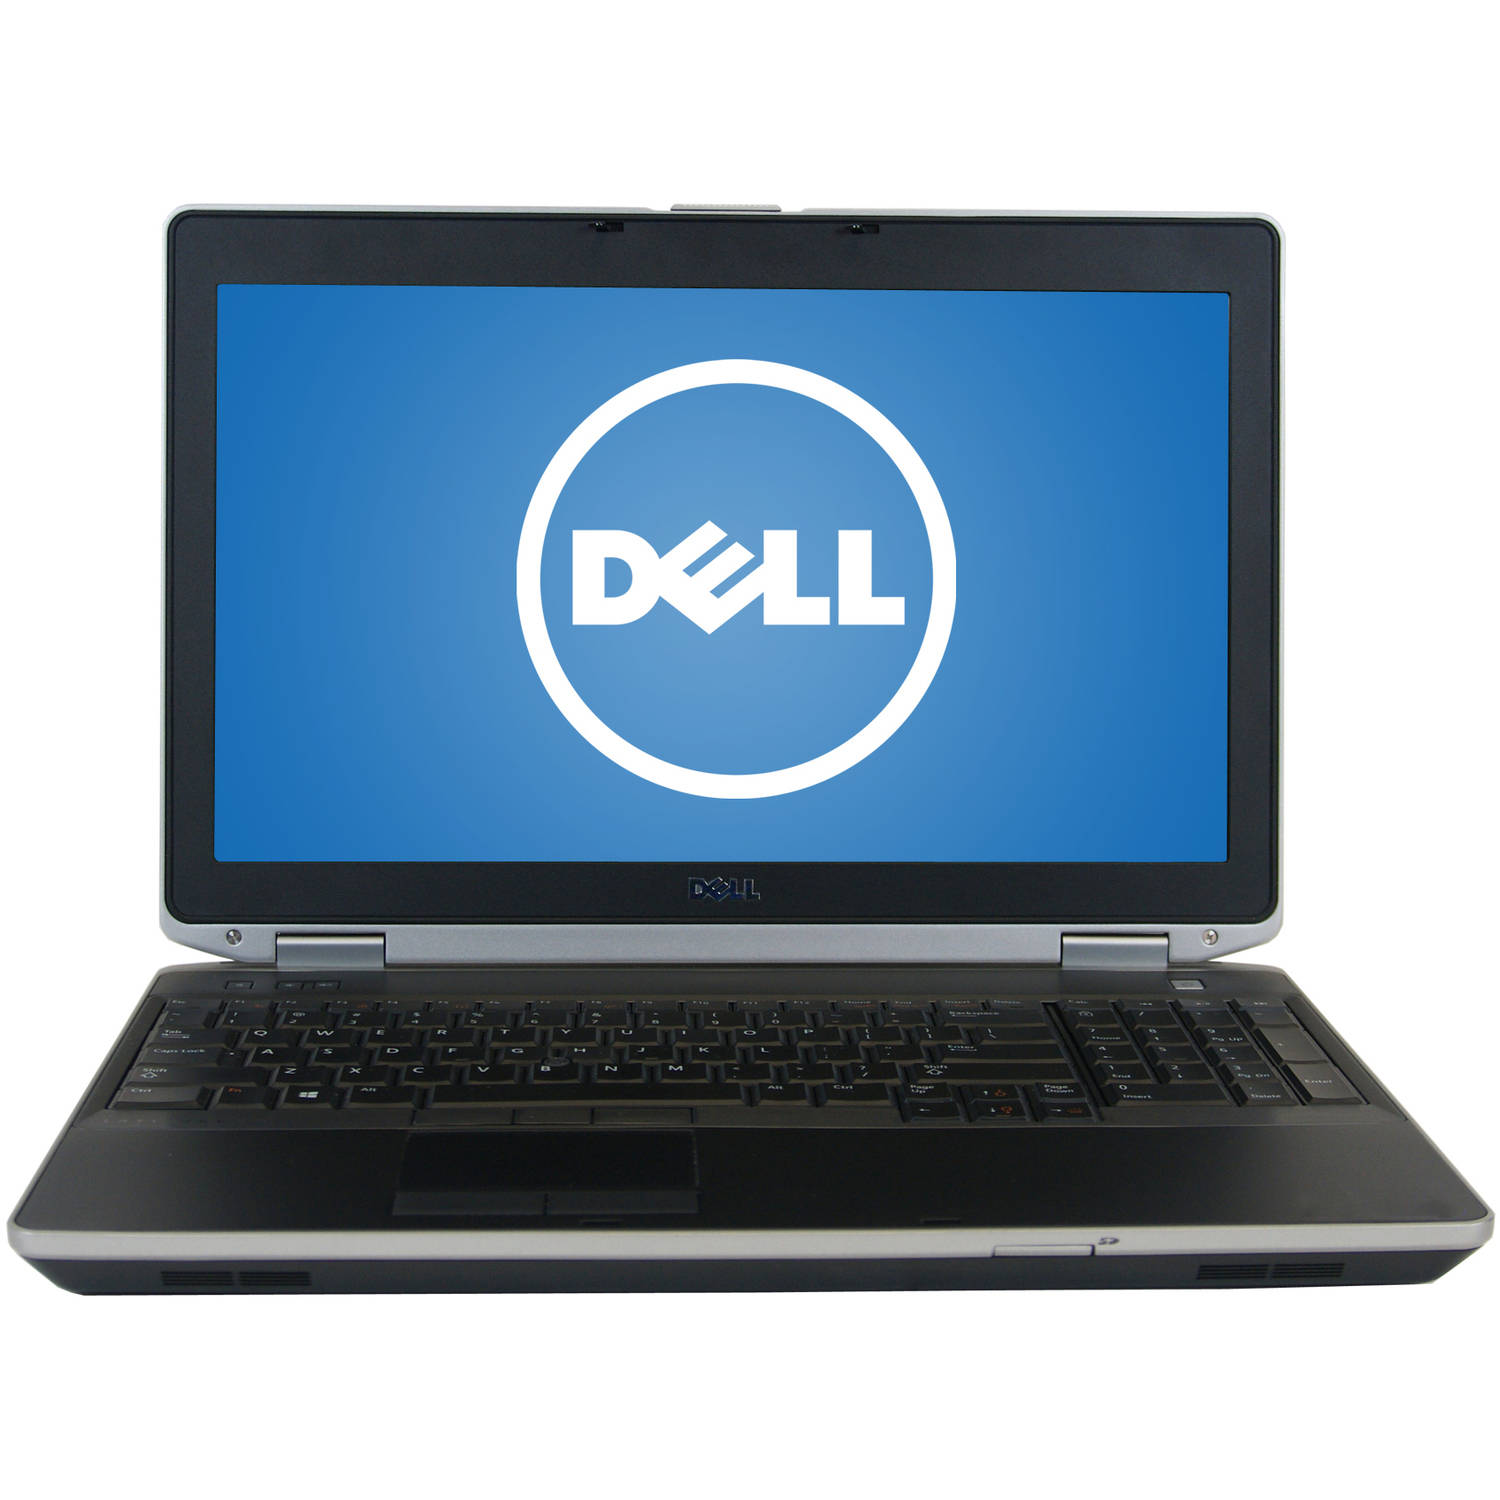 Refurbished Dell 15.6 Latitude E6530 Laptop PC with Intel Core i5 - 3310M Processor, 8GB Memory, 750GB Hard Drive and Windows 10 Pro